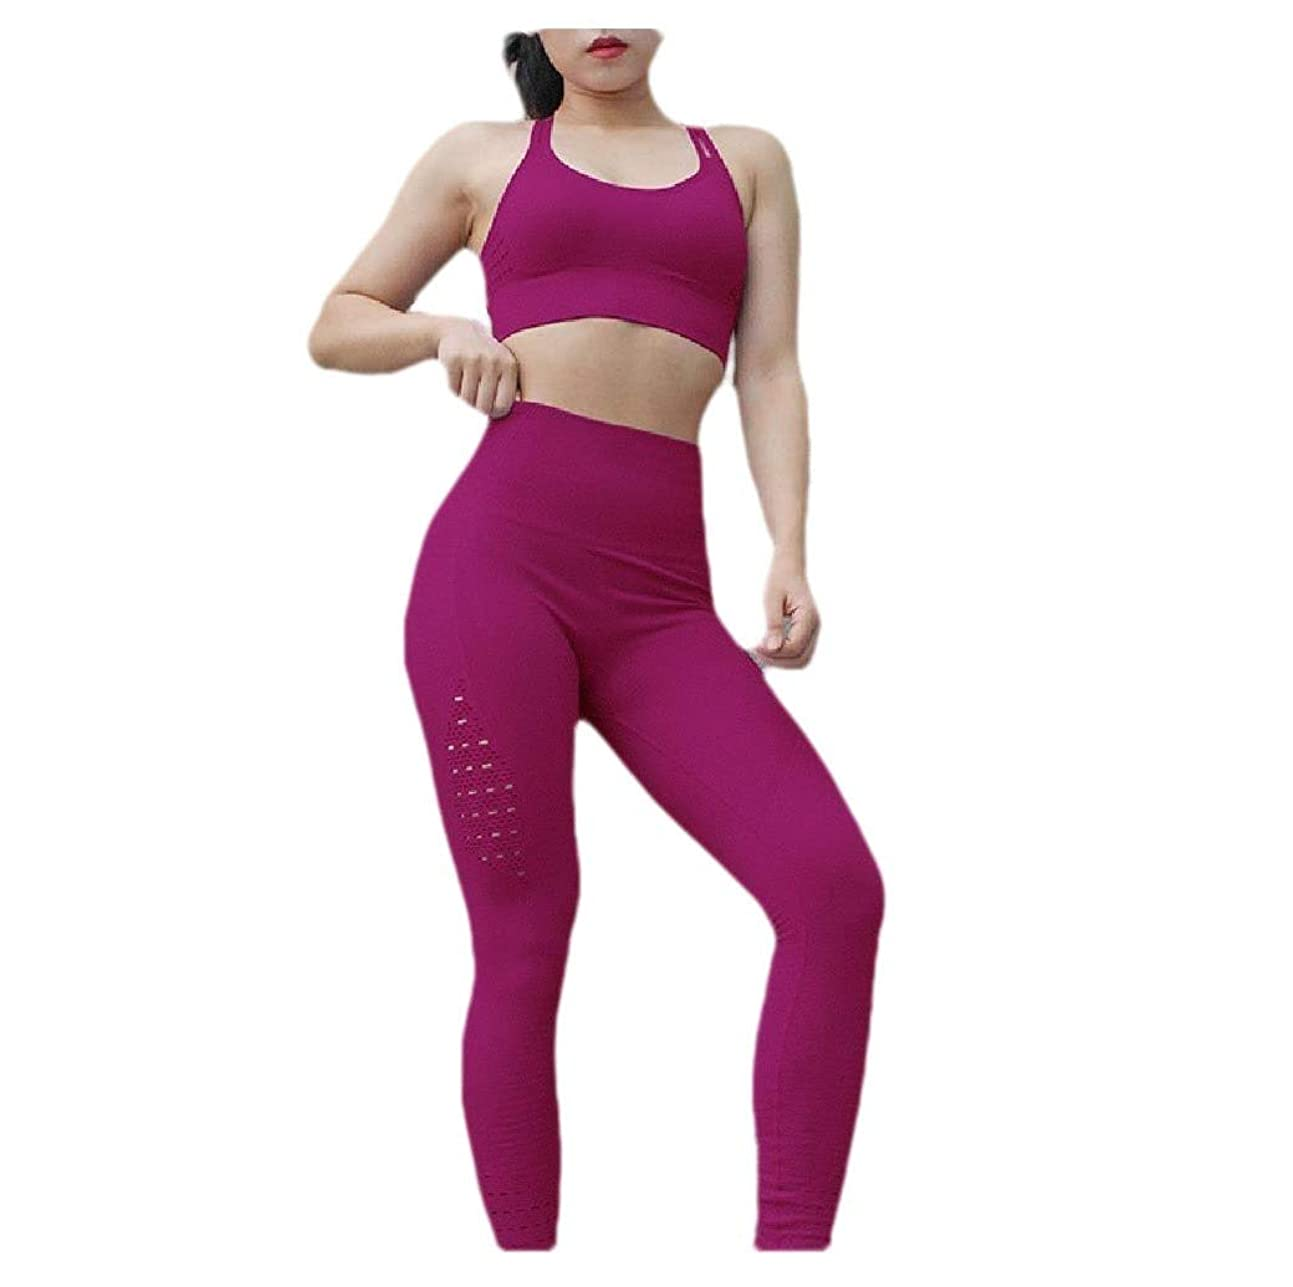 好奇心盛急速なラボTootess Women Pure Color Bodysuit Crop Beauty Back Workout Athletic Suit Set